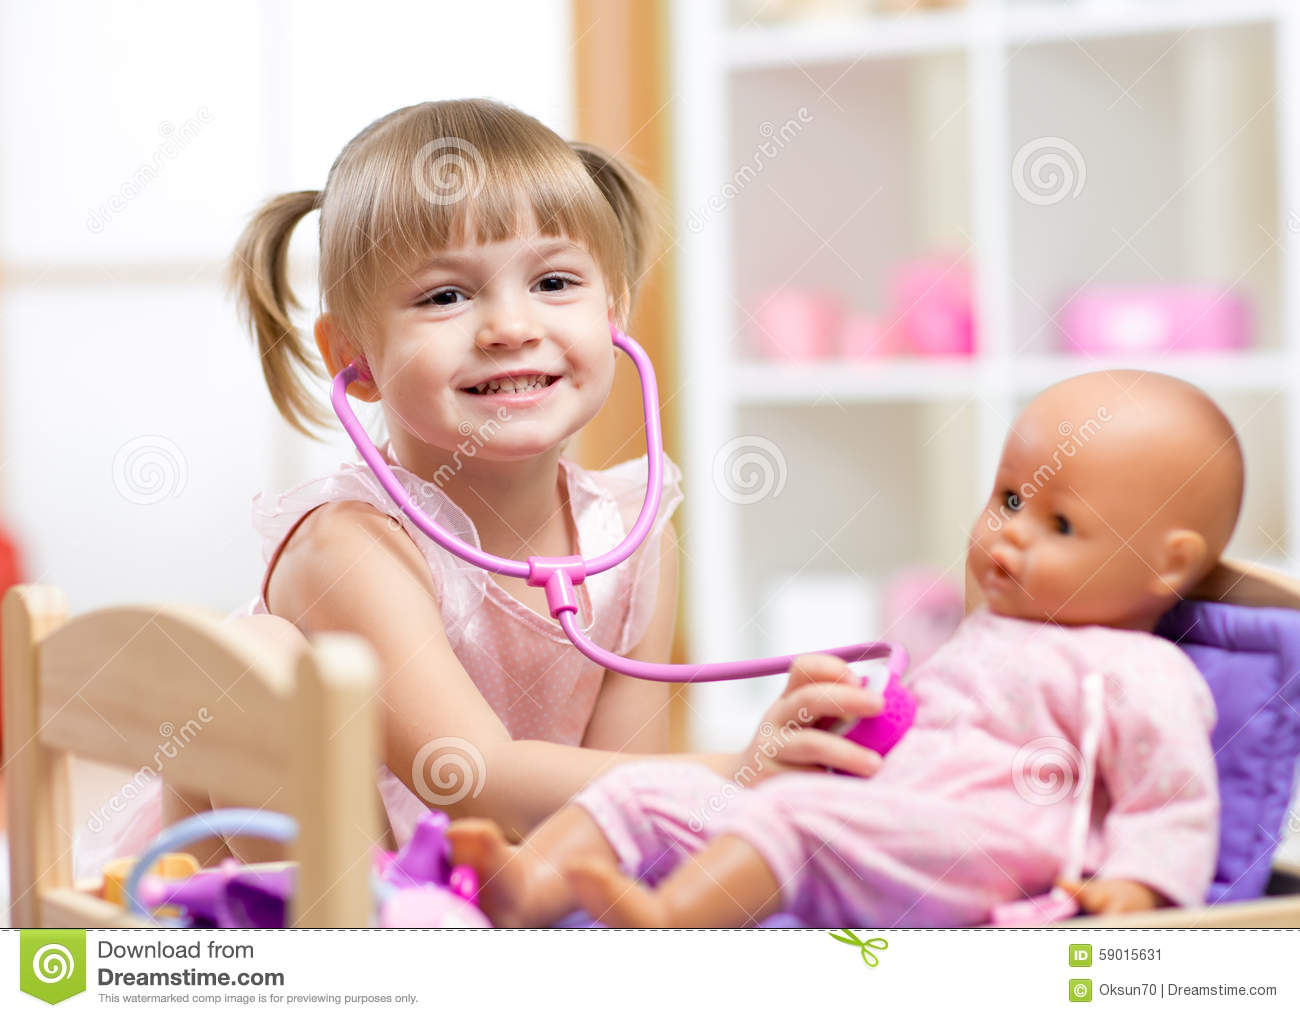 Child Playing Doctor Role Game Examinating Her Stock Photo